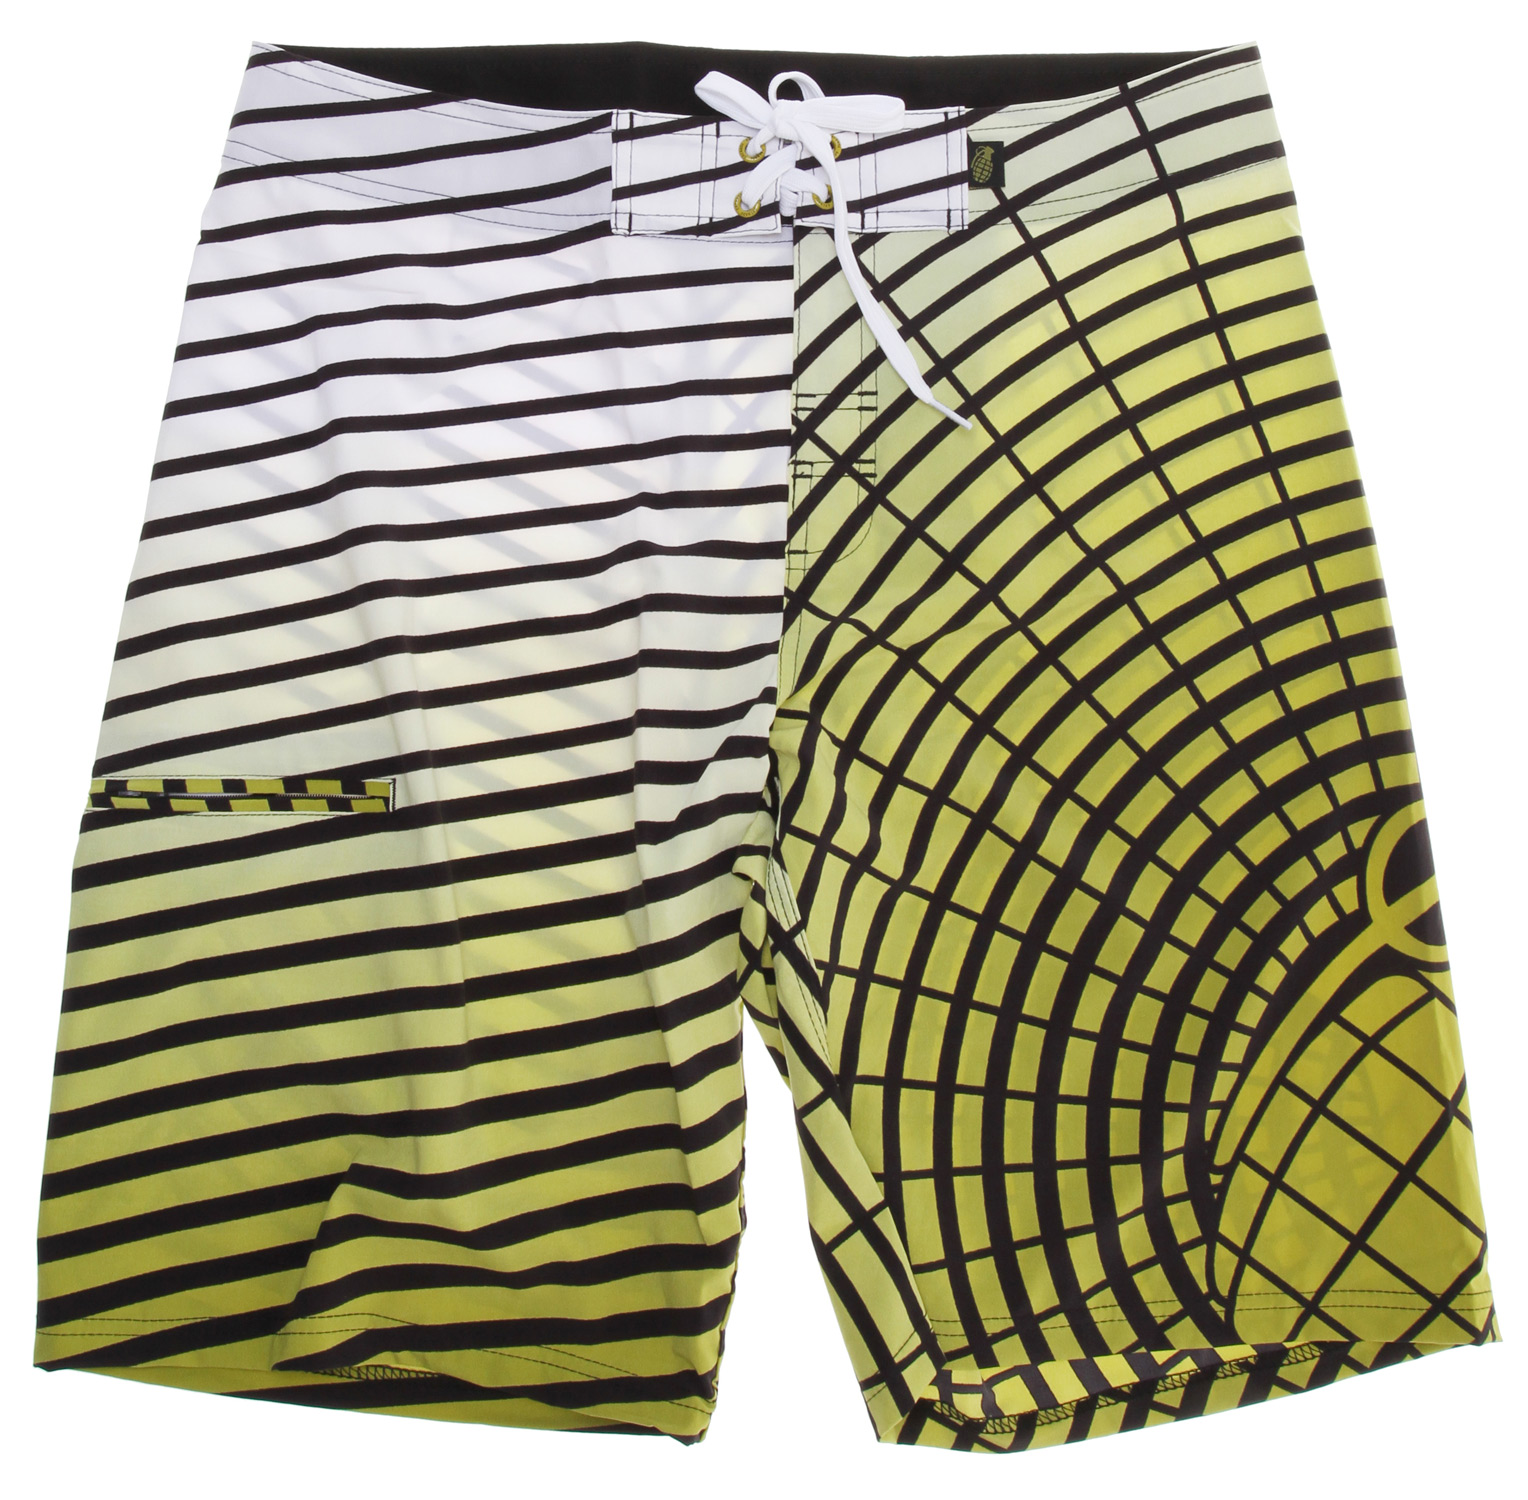 Surf The Grenade Explosive Boardshorts are perfect for active fun at the beach, pool, or wherever! The polyester/spandex blend fabric is both durable and comfortable, with a drawstring waist and loosely fitted trunks for hot weather. These shorts also feature a small side pocket that is just the right size for stashing cards or keys. You can be confident that the Explosive Boardshorts will thrive in the rough and tumble of horsing around at the pool or surfing at the beach.Key Features of the Grenade Explosive Boardshorts: 83% polyester/17% spandex Drawstring fit 4 way stretch - $23.95